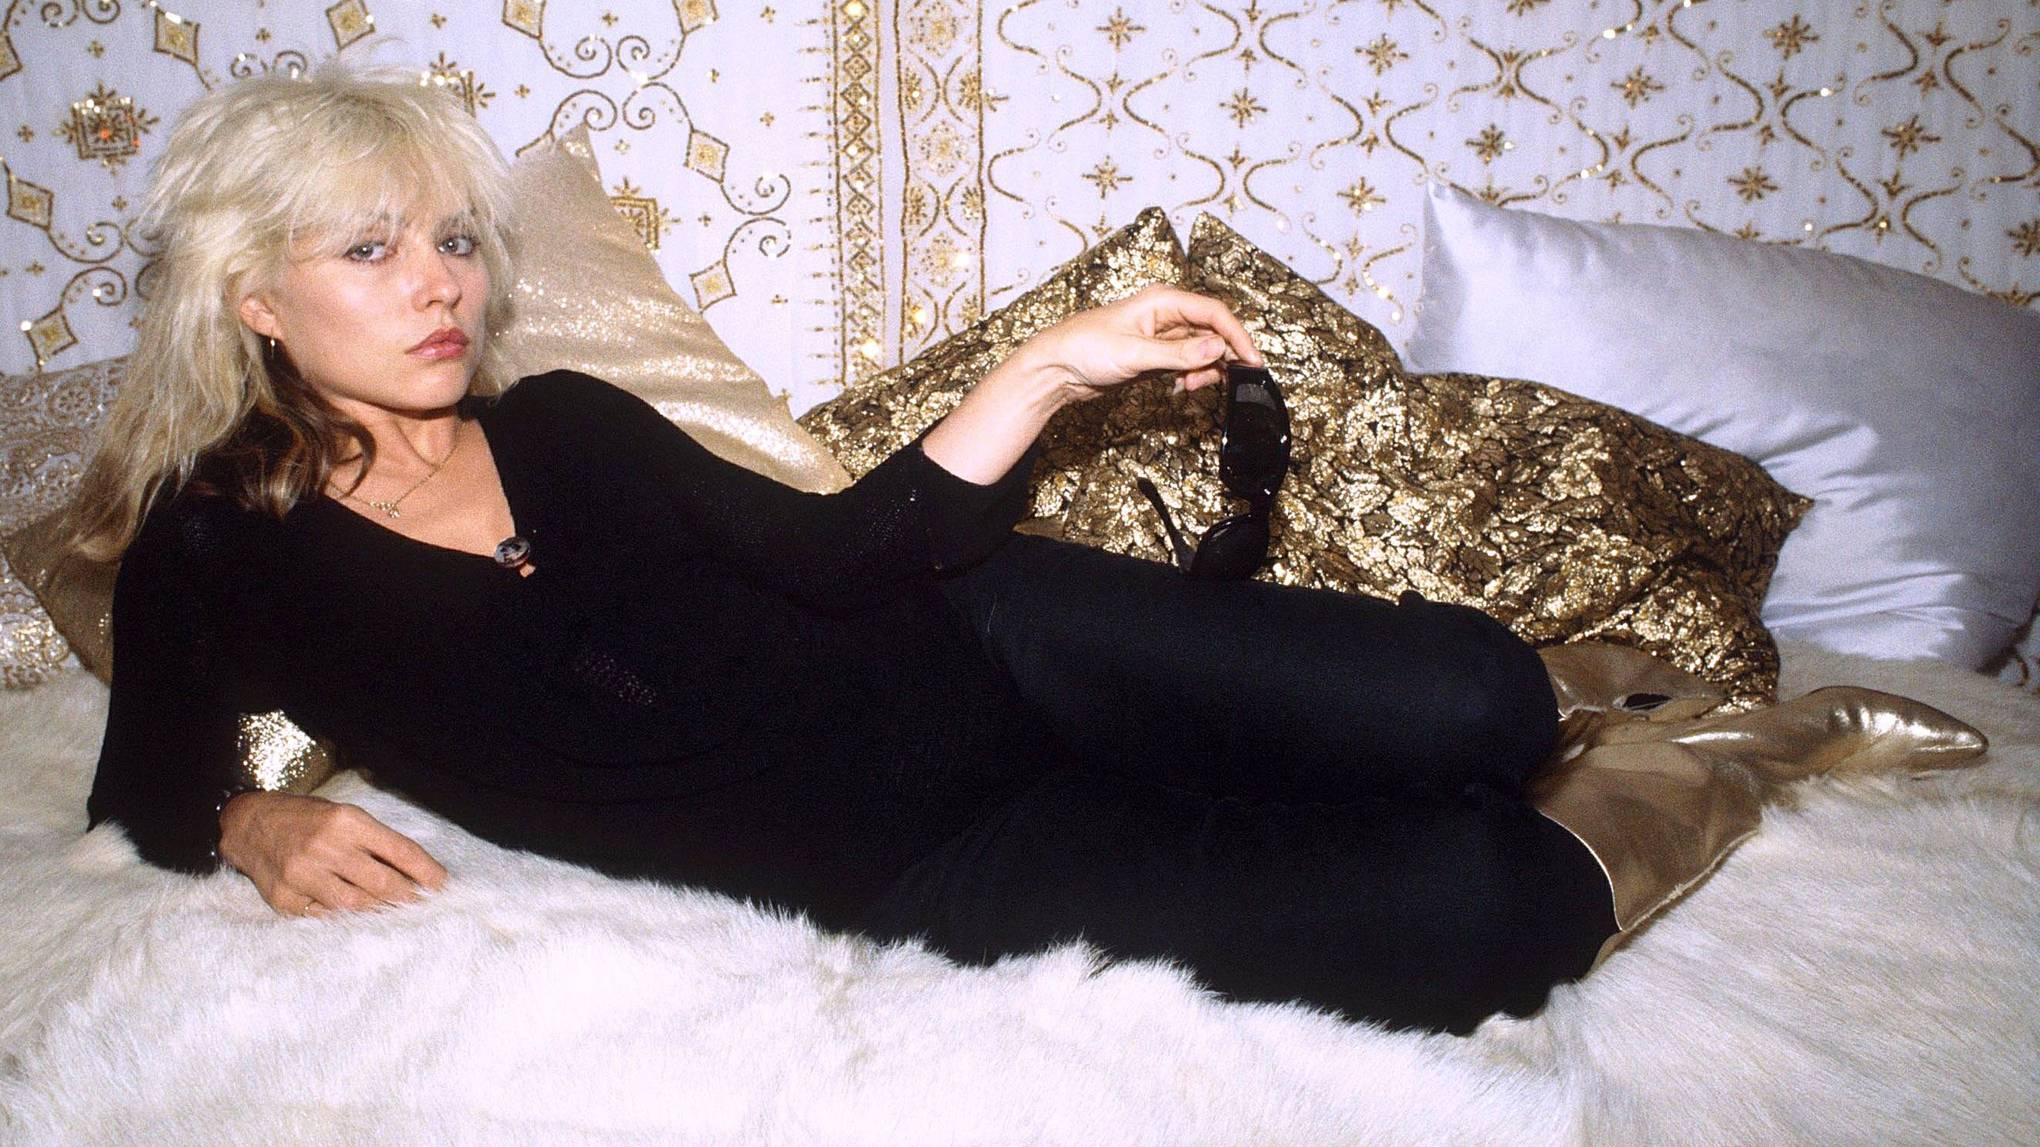 3dd41f910f99a Blondie's style, fashion & iconic looks - Debbie Harry | Glamour UK